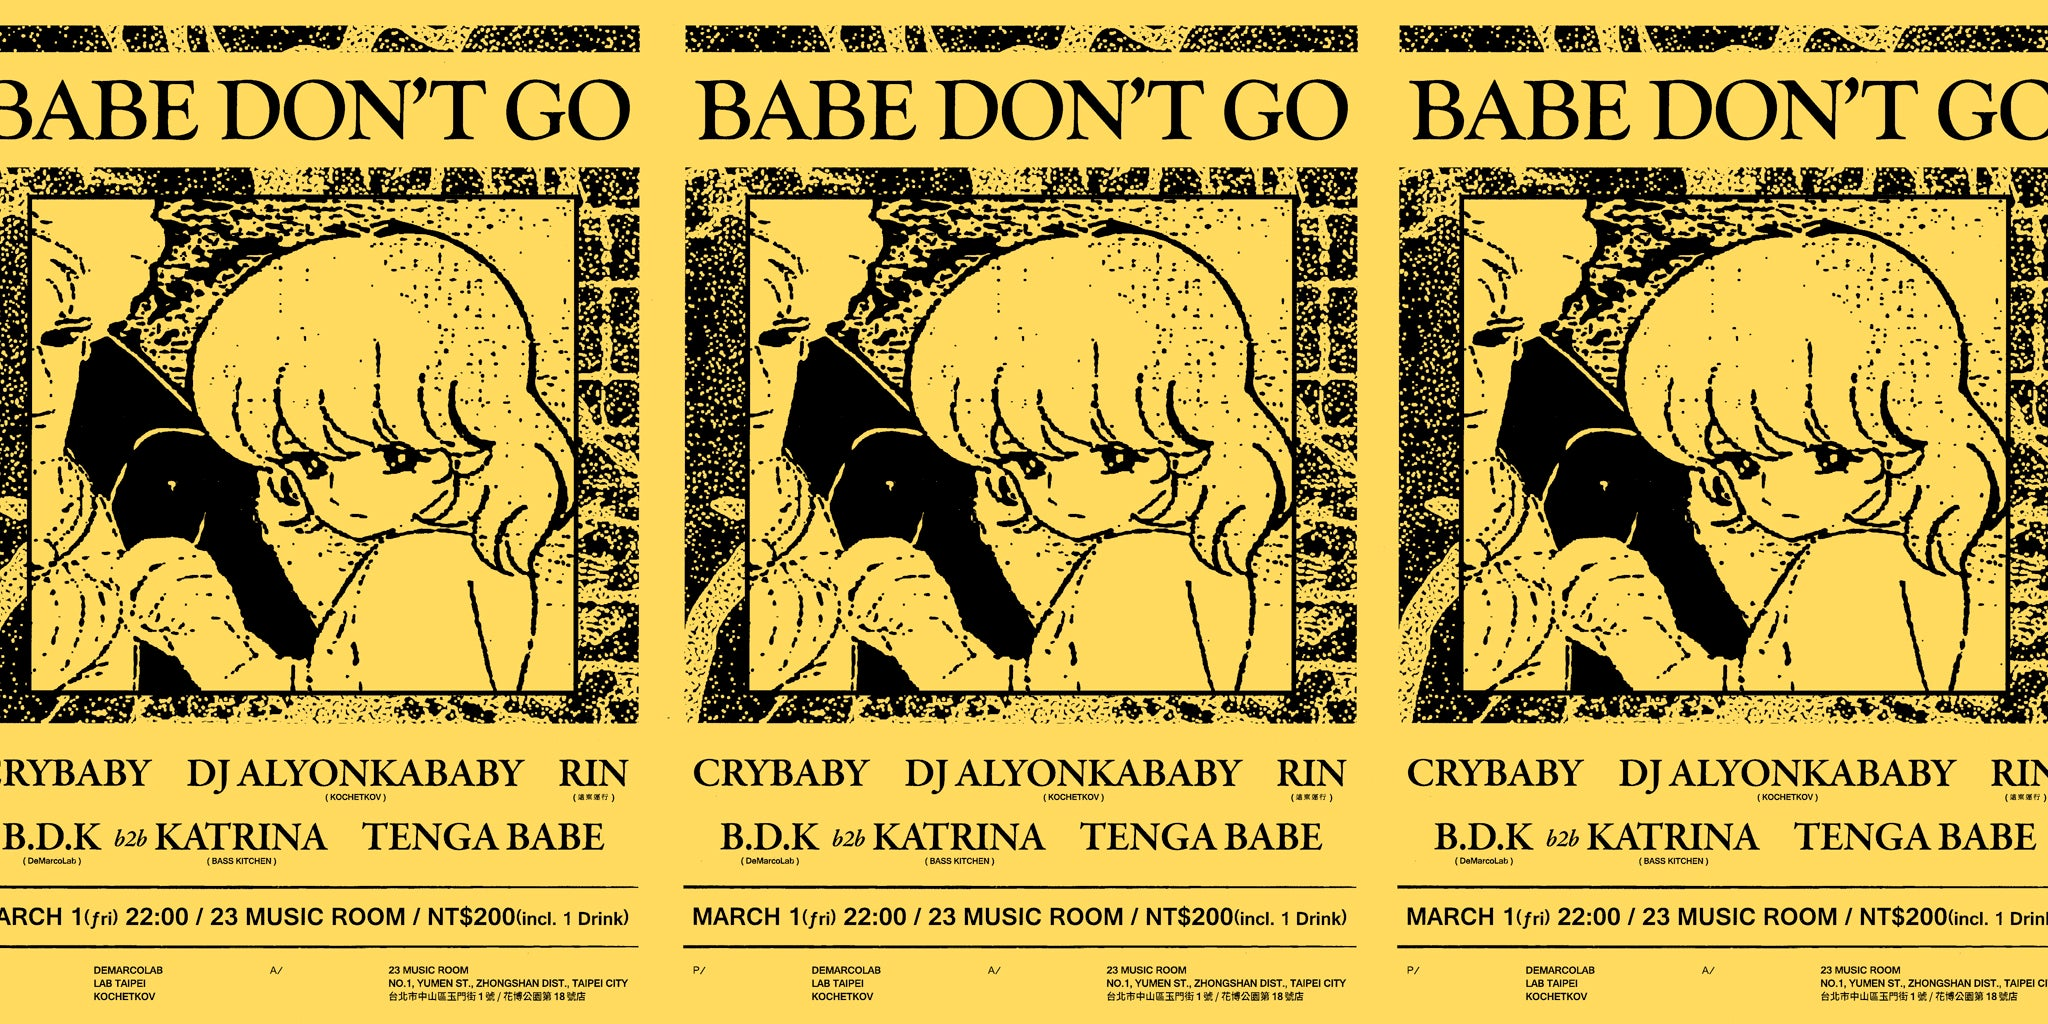 【NEWS】BABE DON'T GO #4